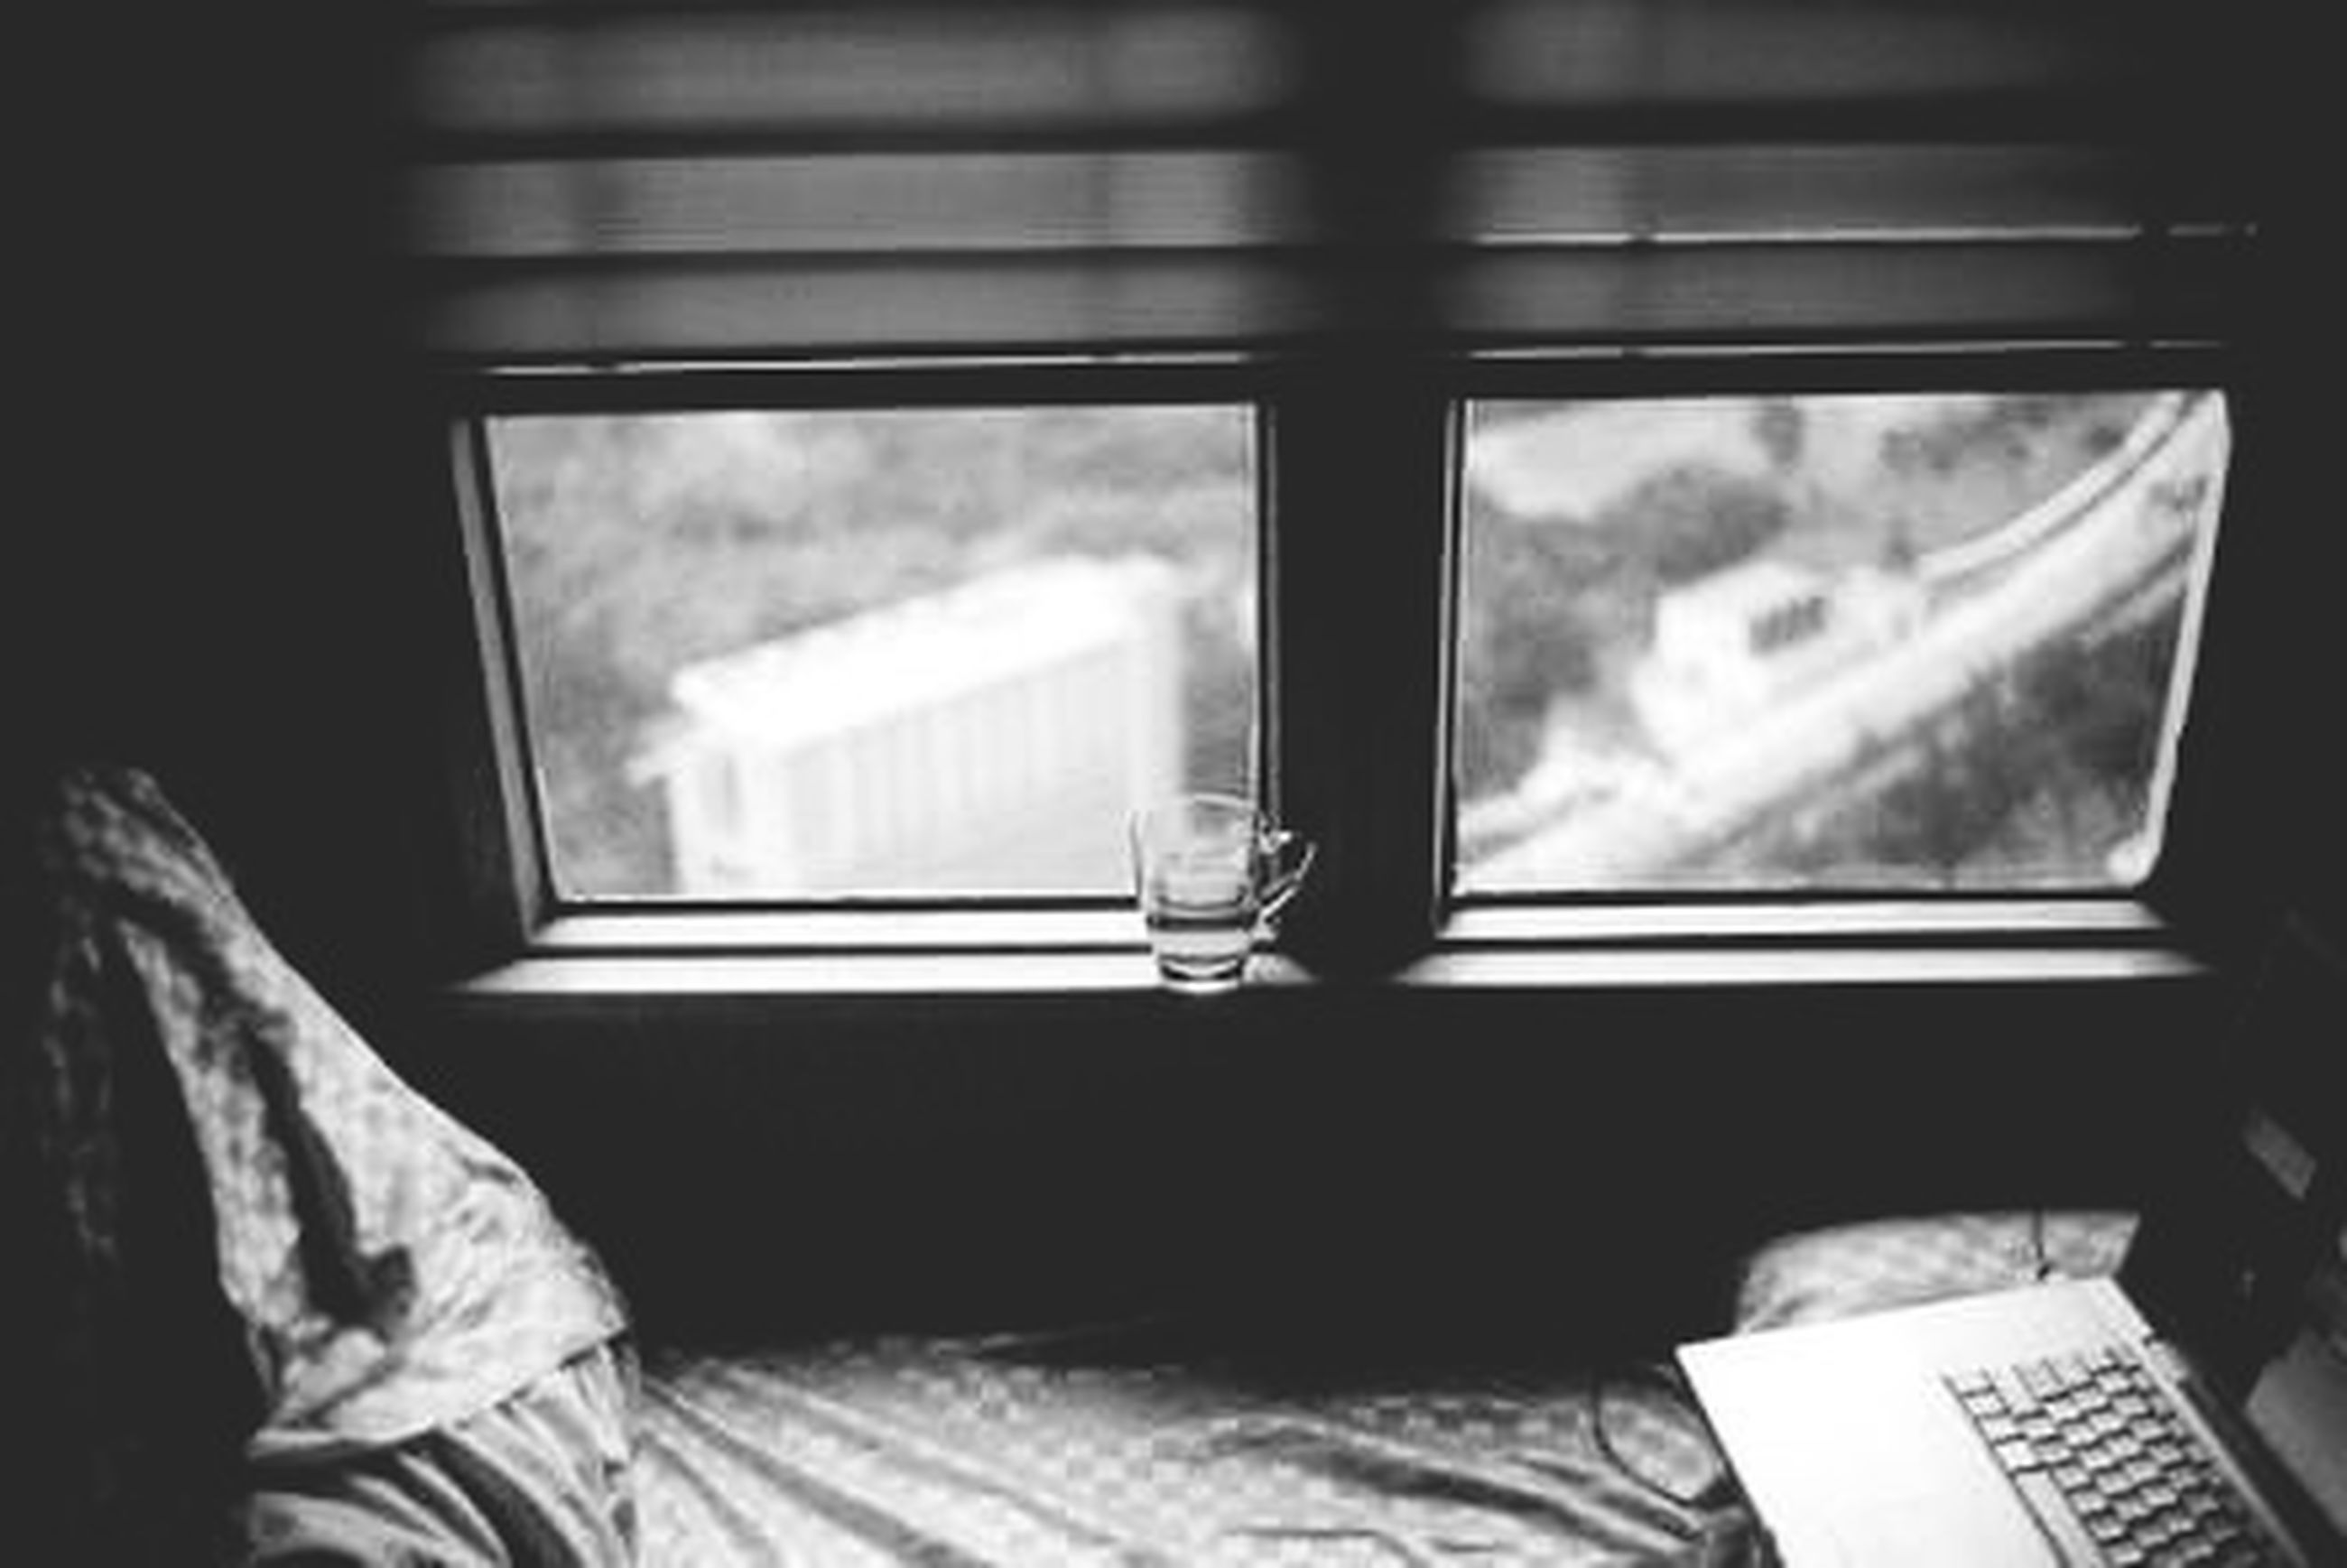 indoors, window, glass - material, transparent, home interior, table, chair, curtain, absence, glass, reflection, day, no people, book, empty, open, bed, close-up, domestic room, house